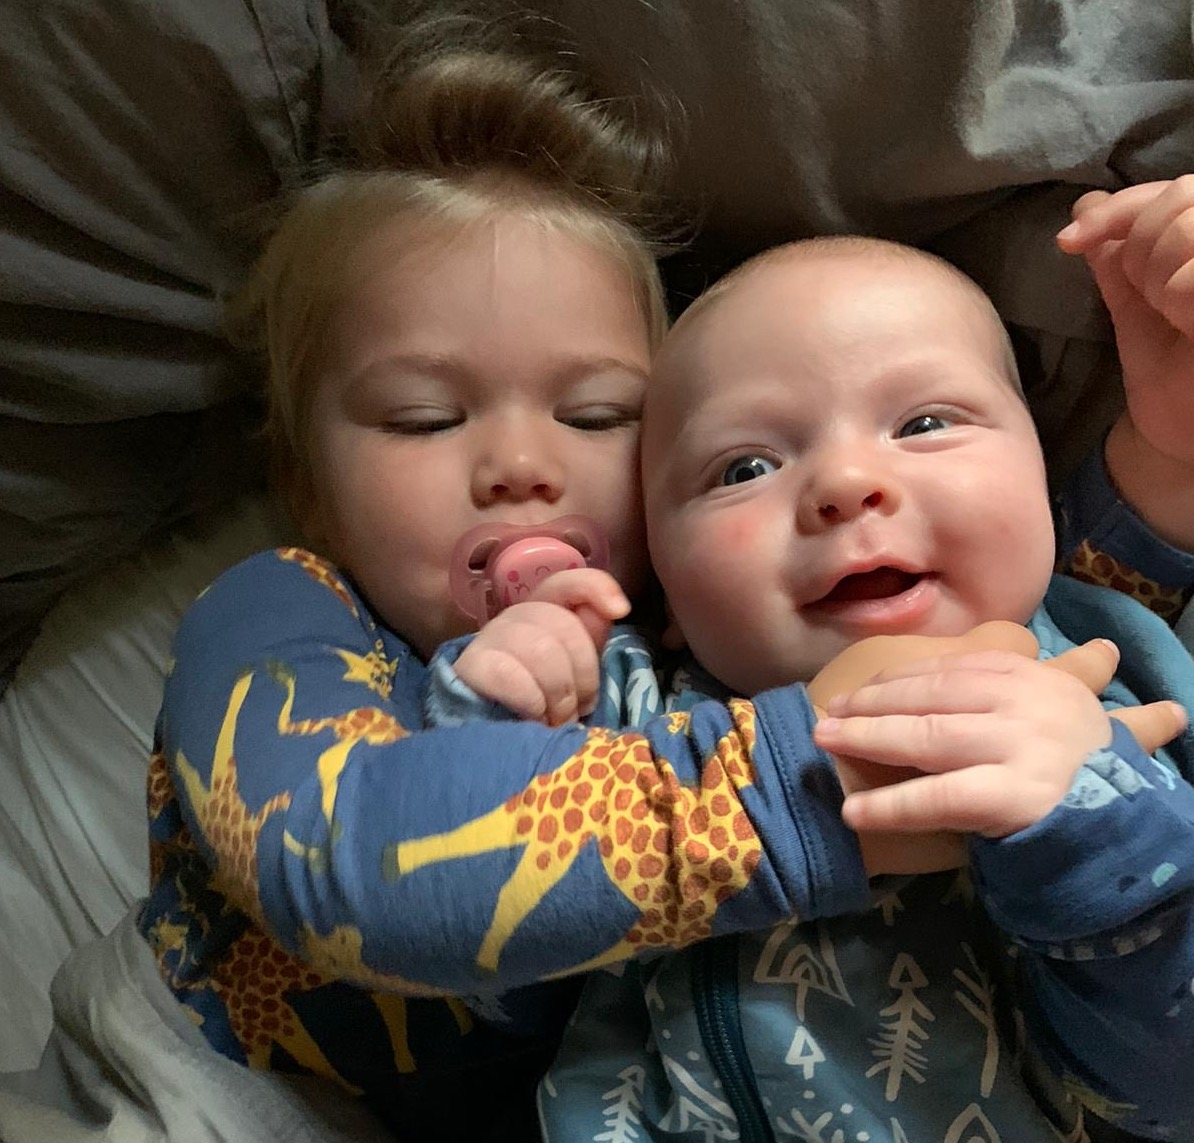 Toddler and baby embracing